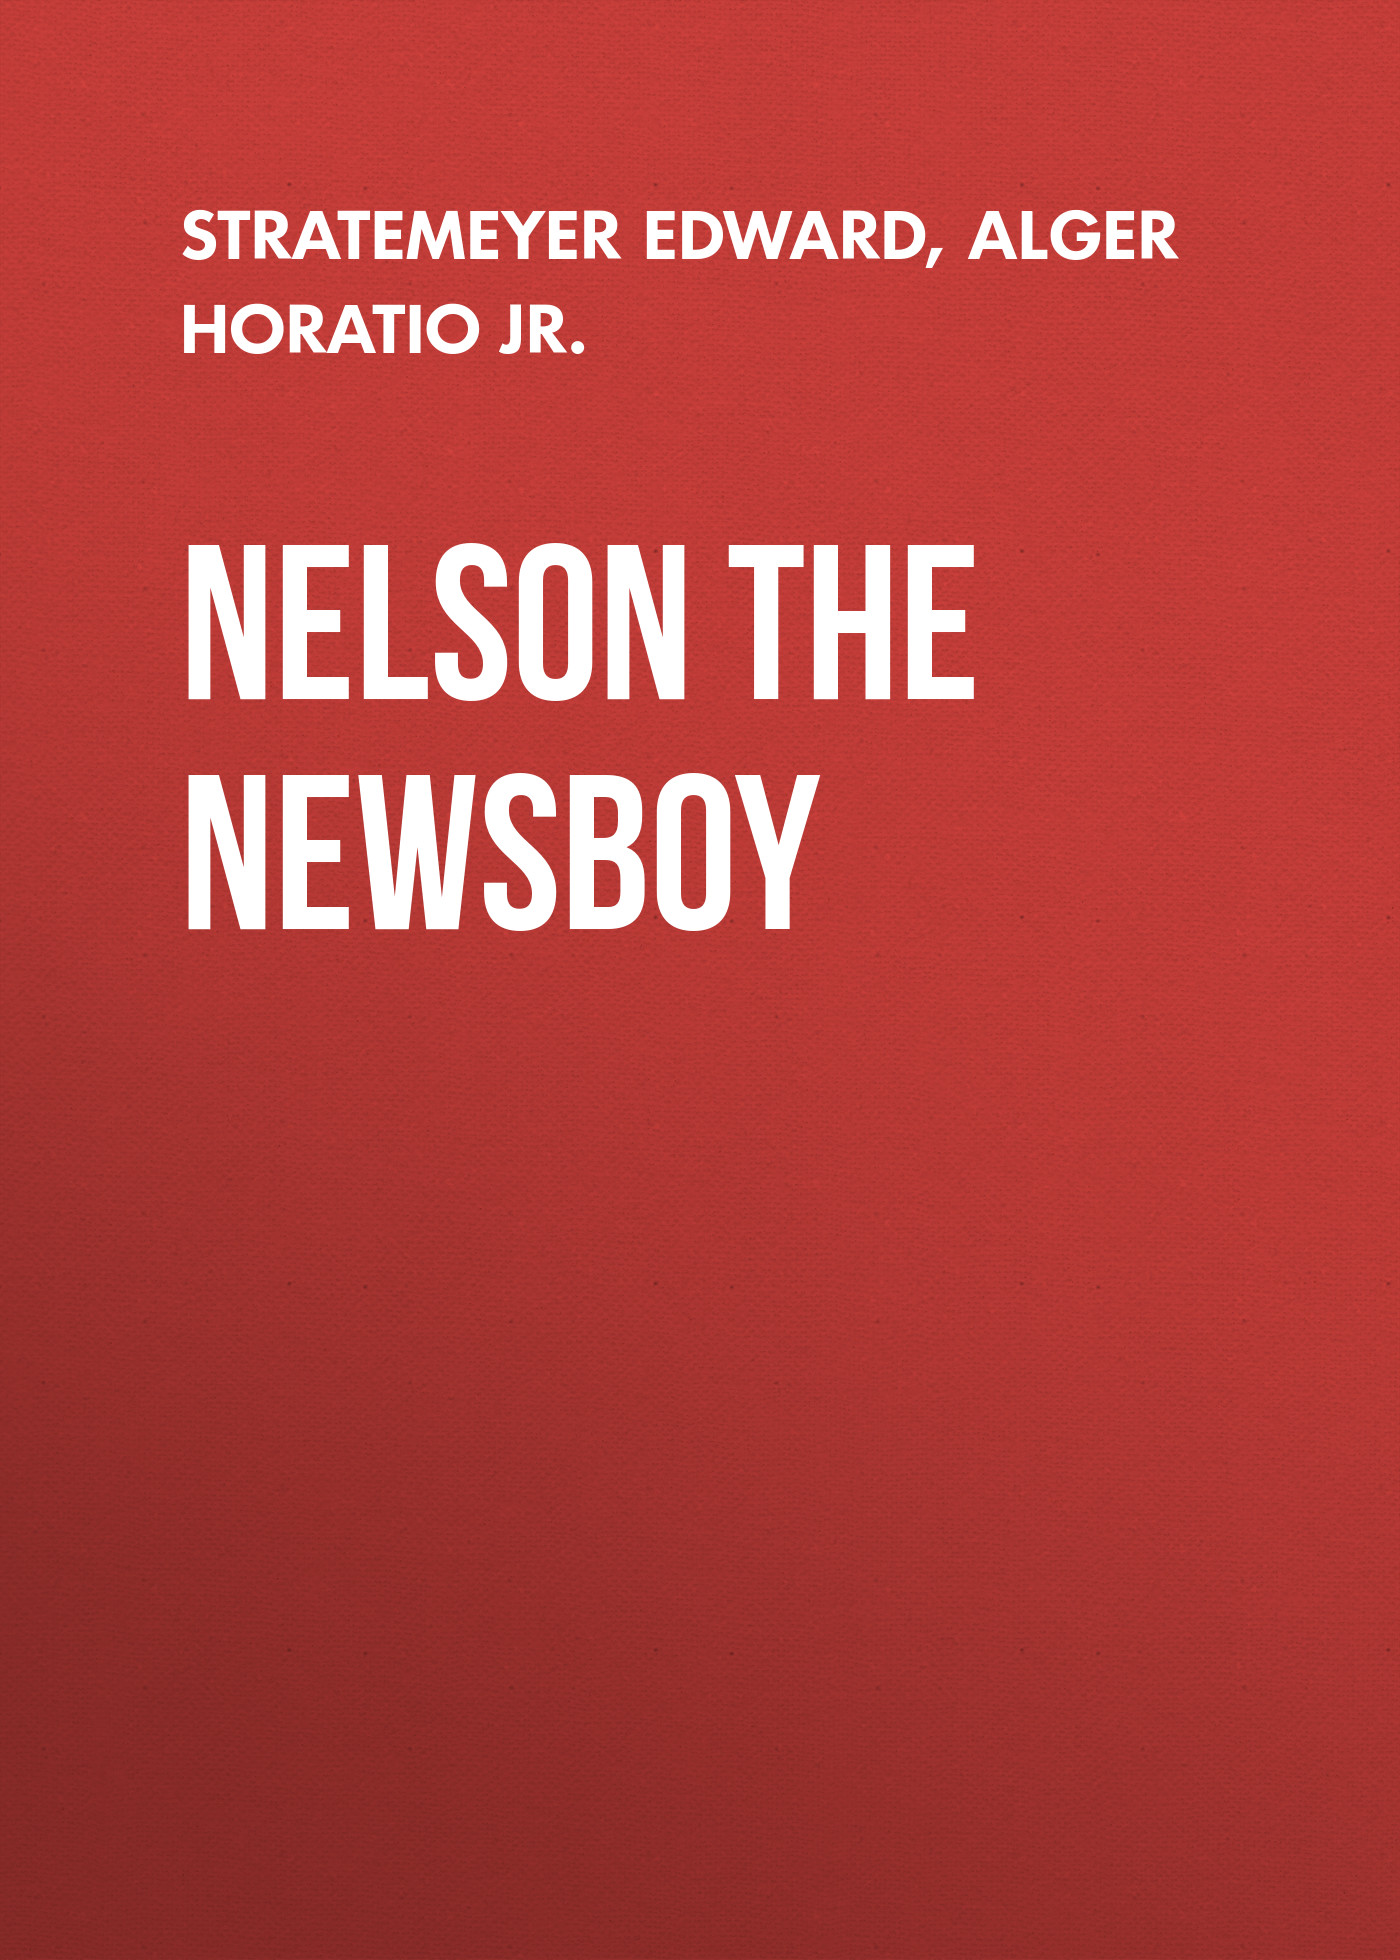 Stratemeyer Edward Nelson The Newsboy